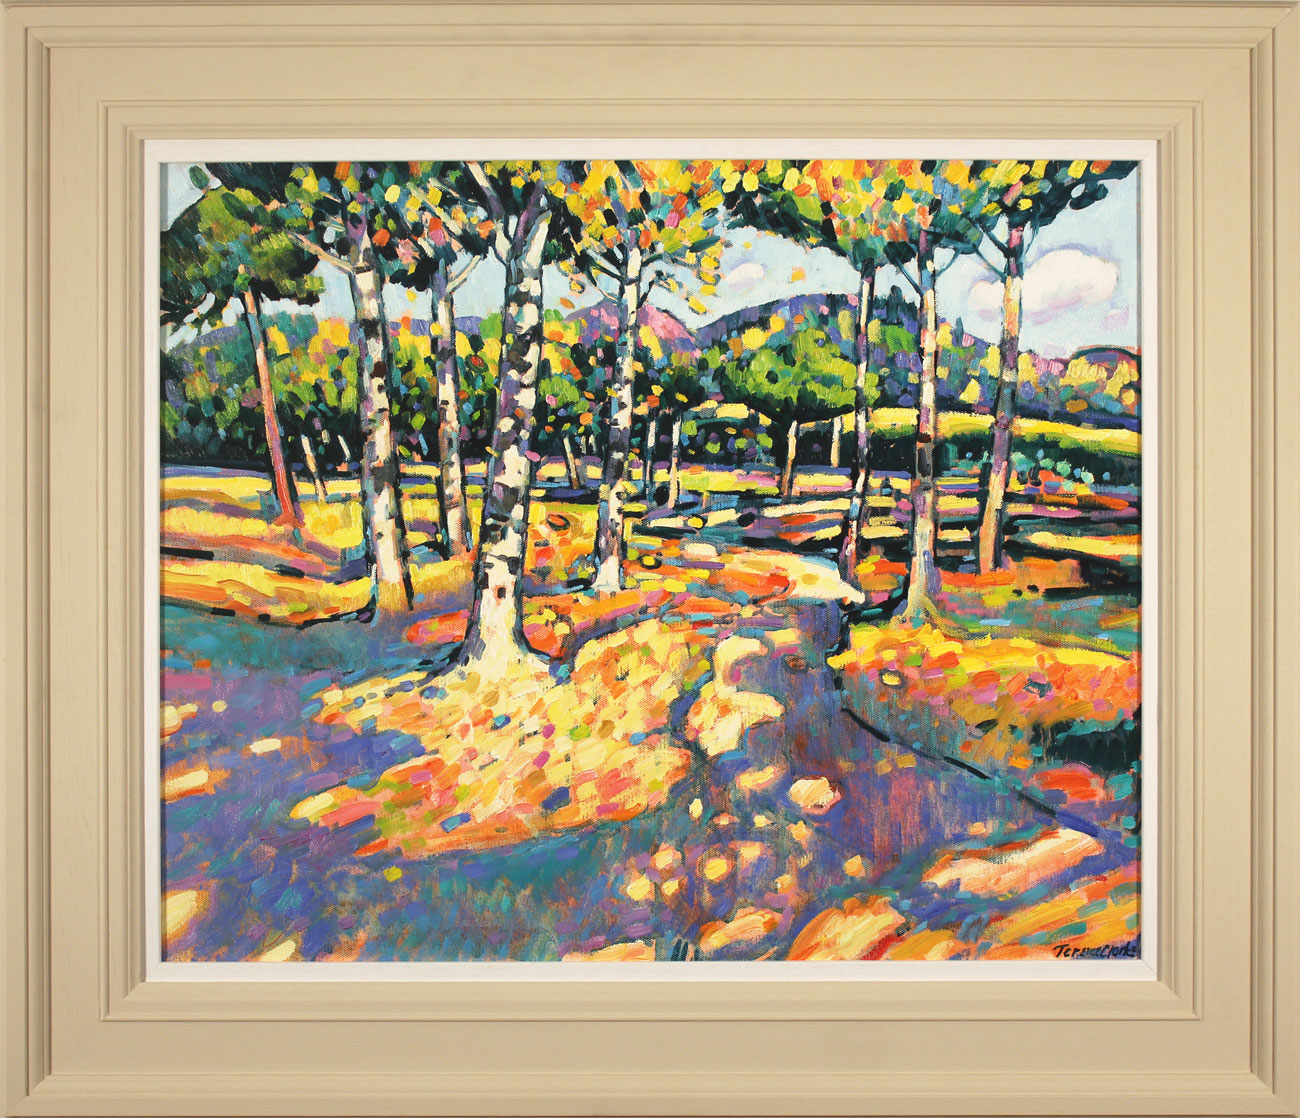 Terence Clarke, Original oil painting on canvas, Falling Leaves, Autumn Click to enlarge